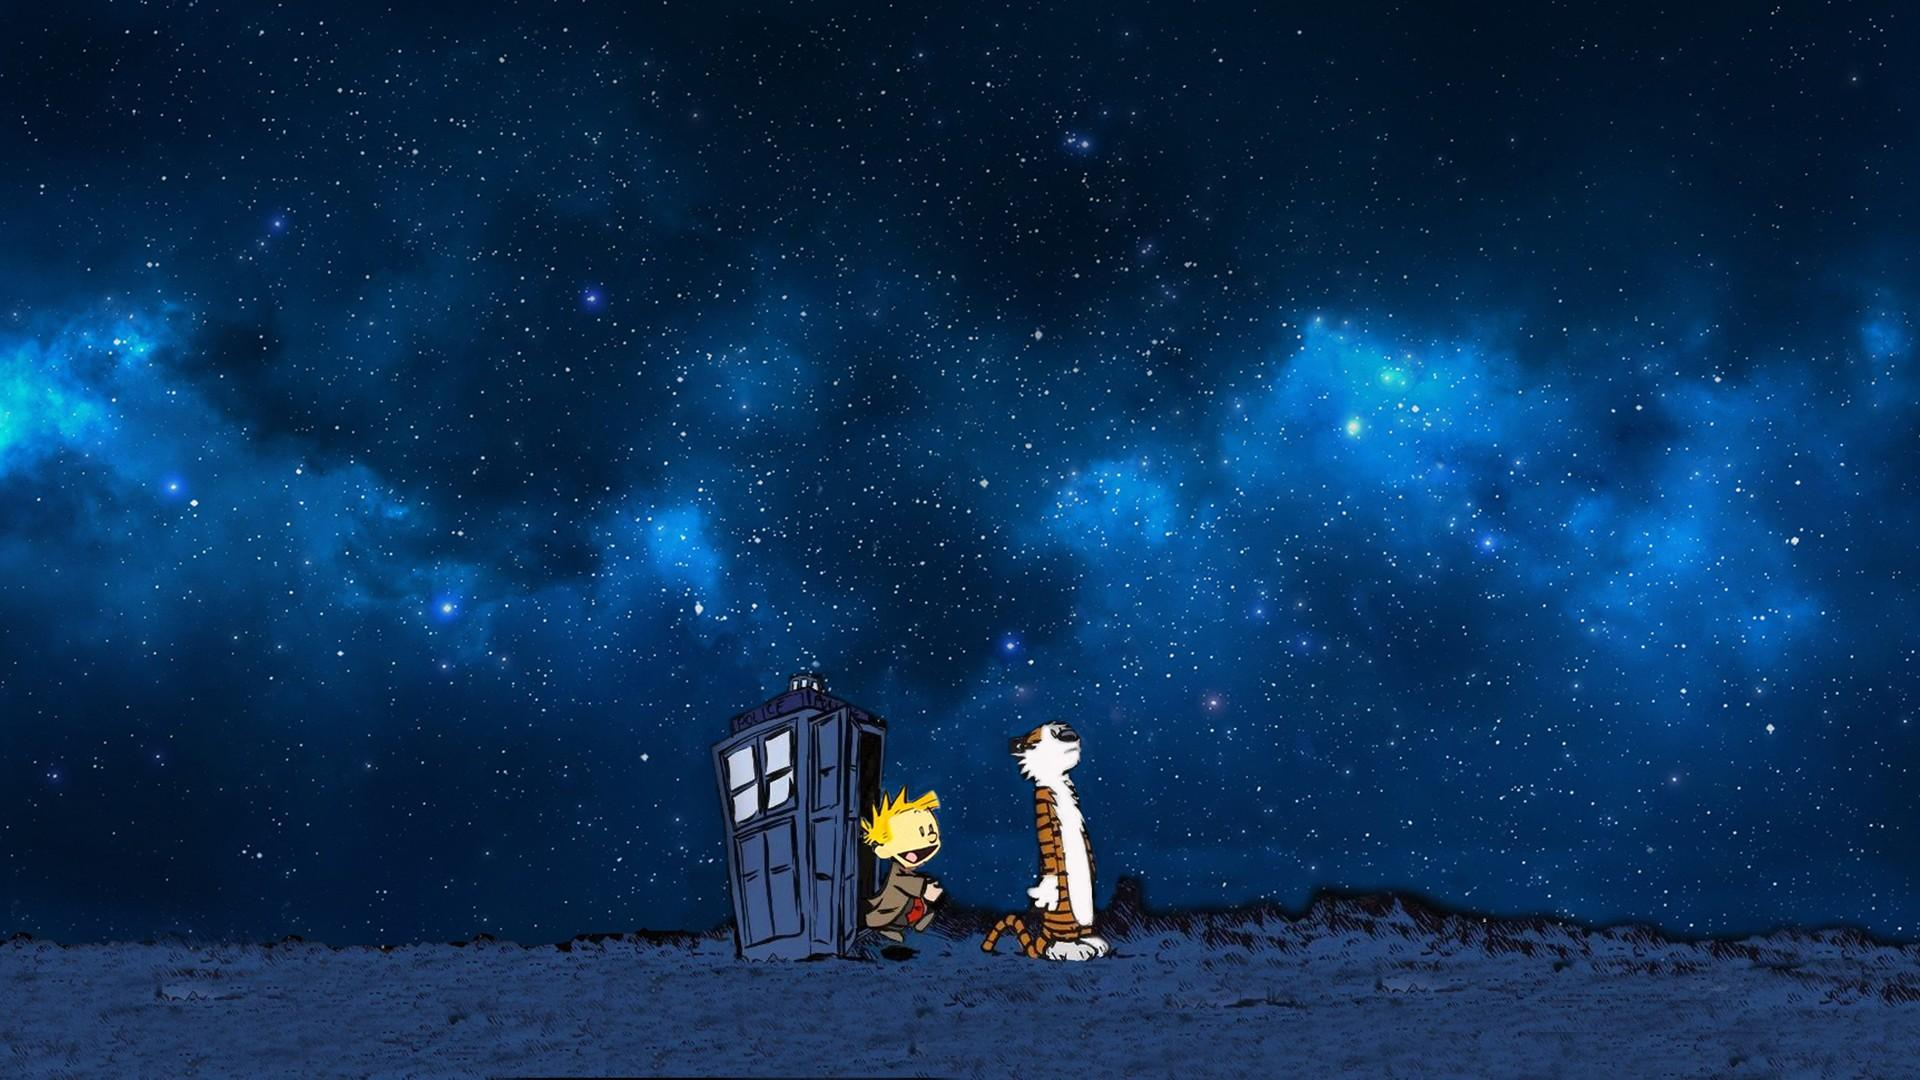 Download Calvin And Hobbes Wallpaper Hd Backgrounds Download